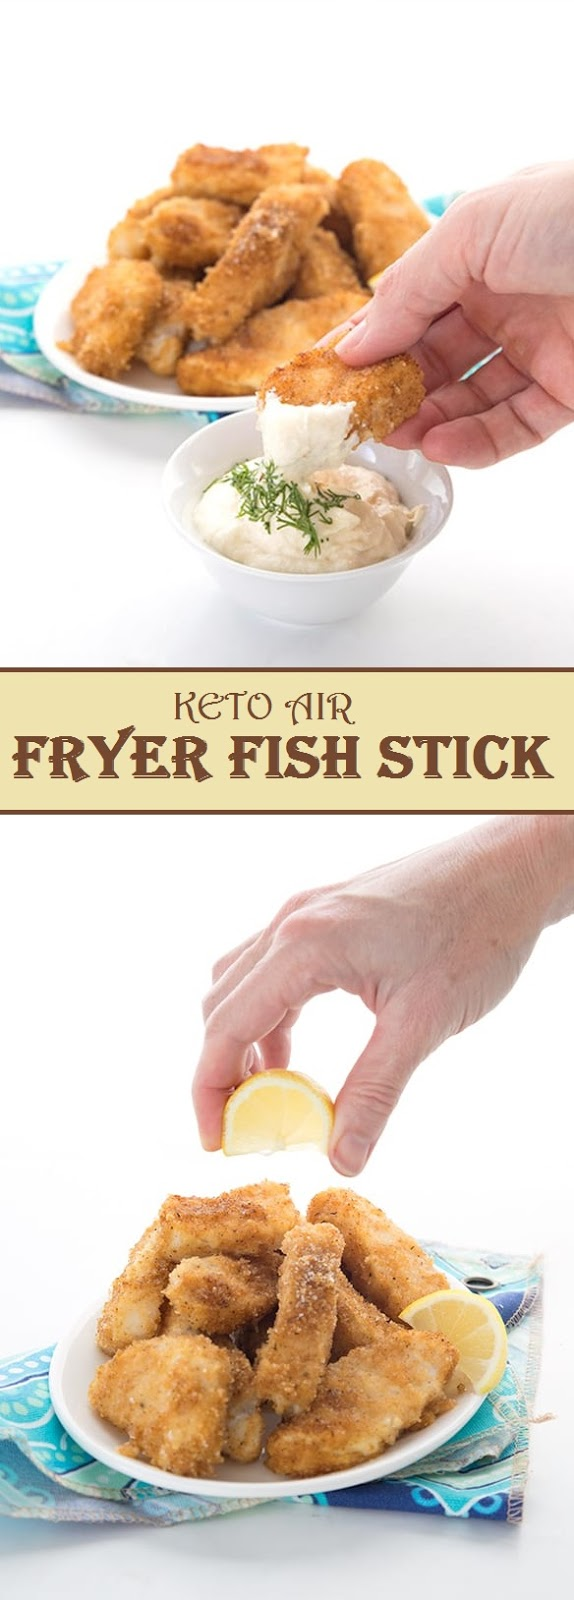 Keto air Fryer Fish Sticks Air fryer fish